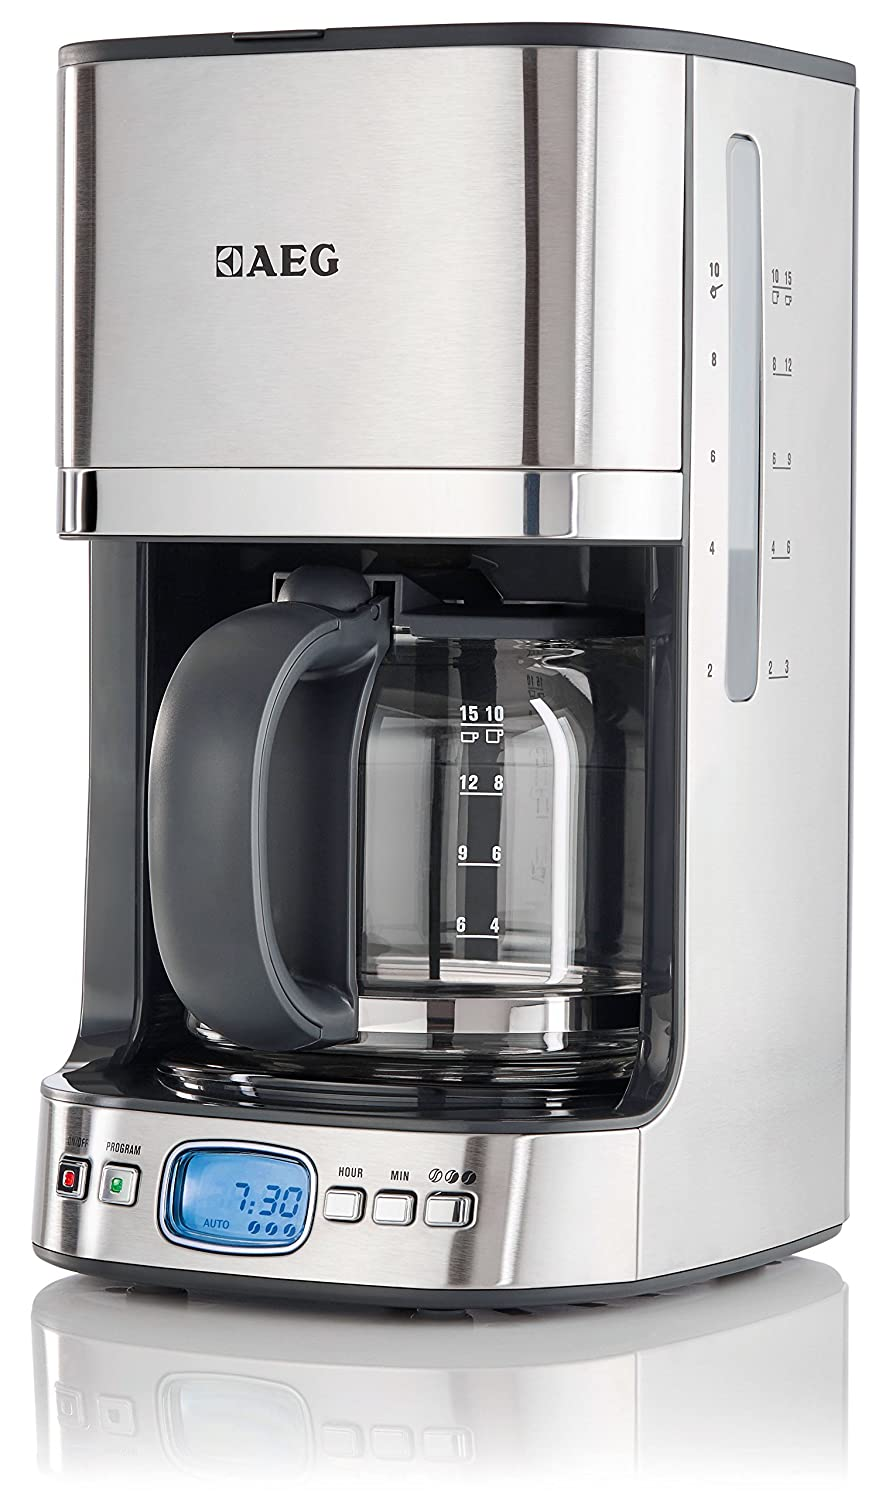 AEG KF7500 Premium Line Filter Coffee Maker, Stainless Steel, LCD Screen,  Semi Automatic: Amazon.co.uk: Kitchen U0026 Home